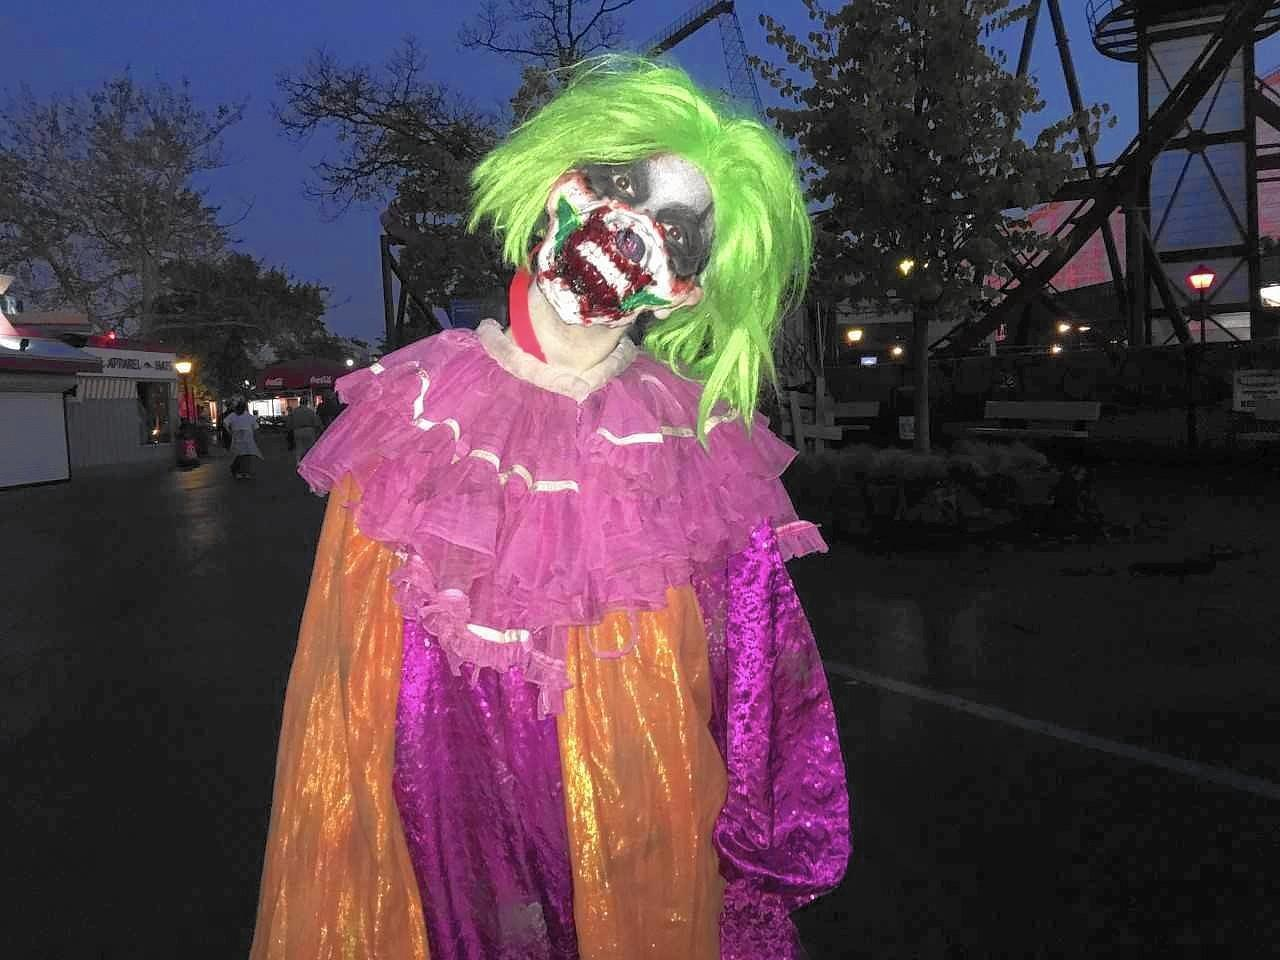 pushing the envelope': great america extends fright fest, plans